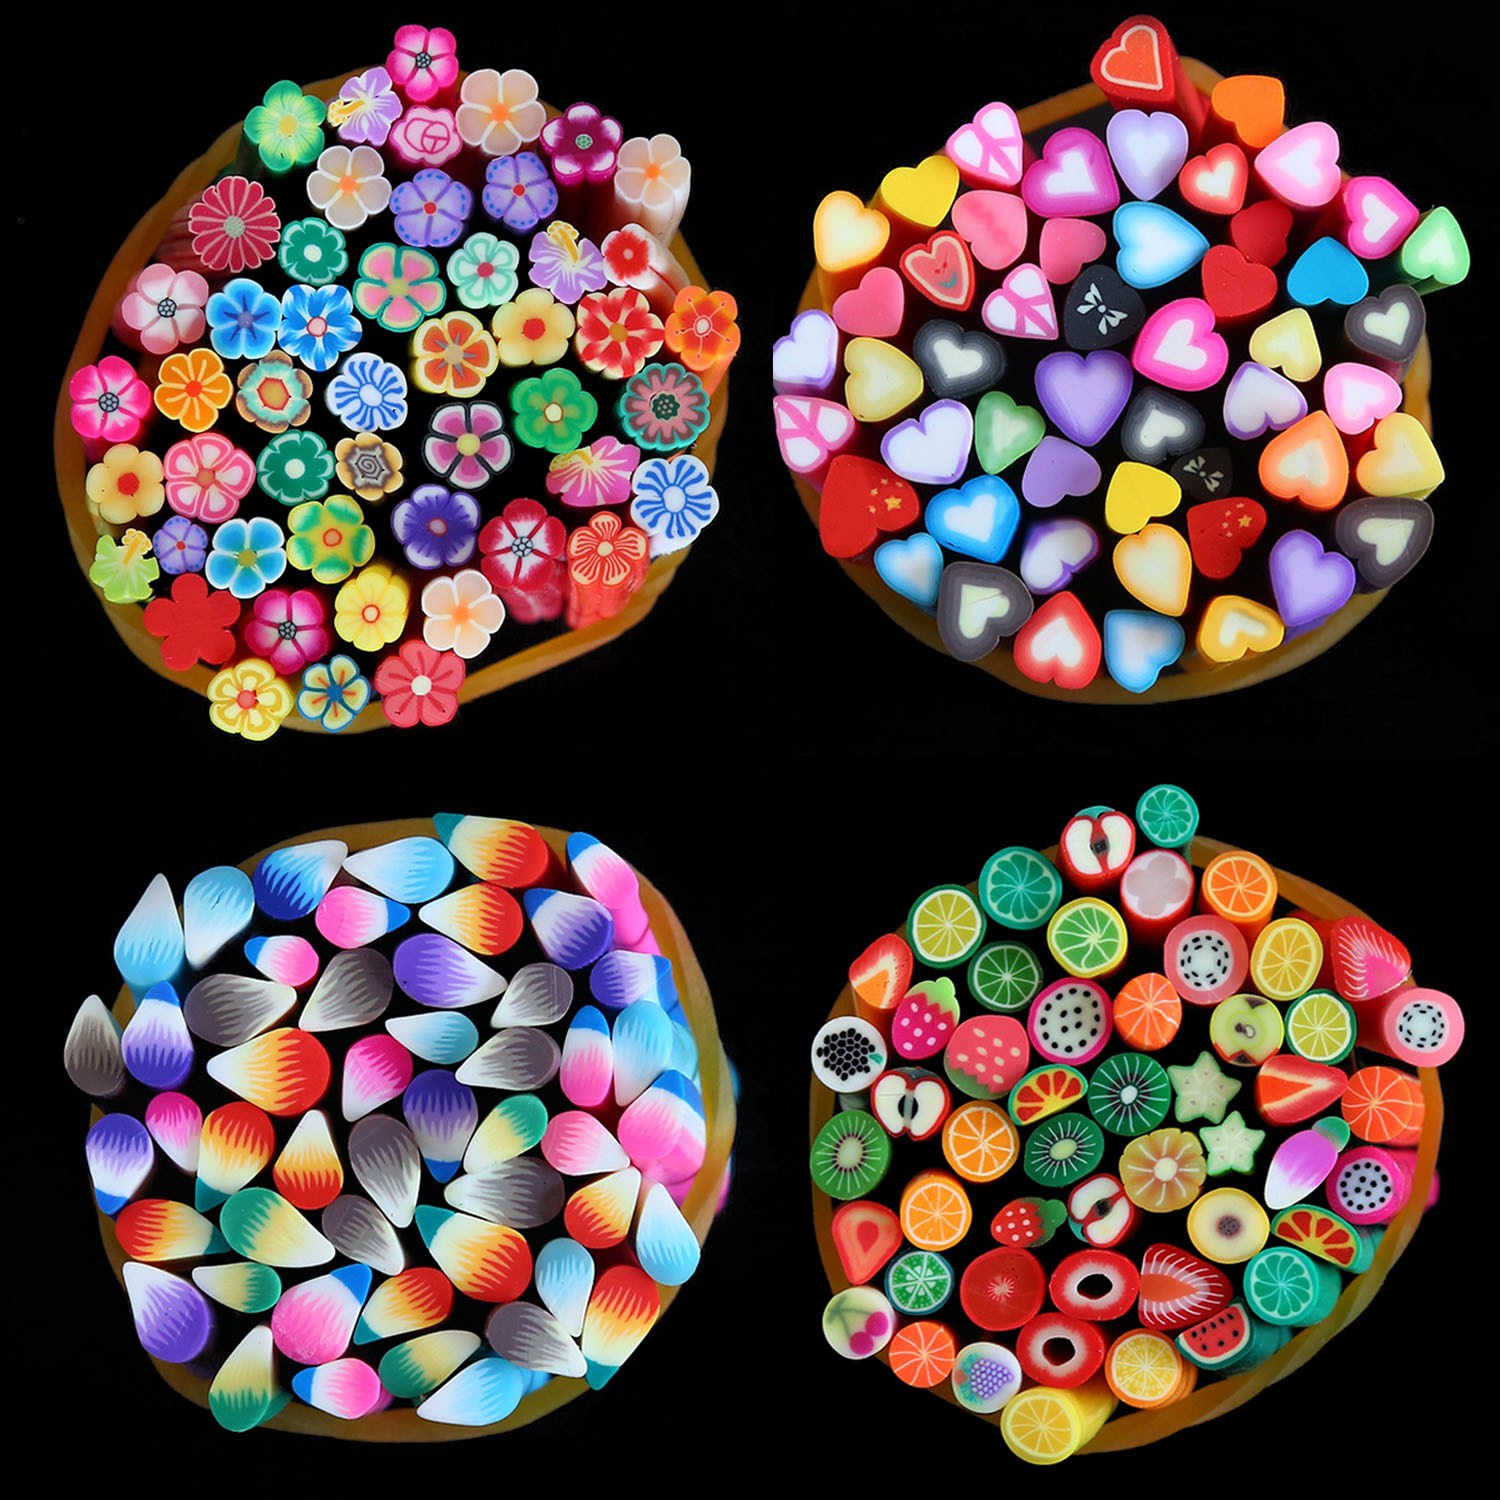 100 PCS Cuttable DIY 3D Nail Art Manicure Craft Polymer Clay Pattern Decorations Stickers Stick Rod Tools